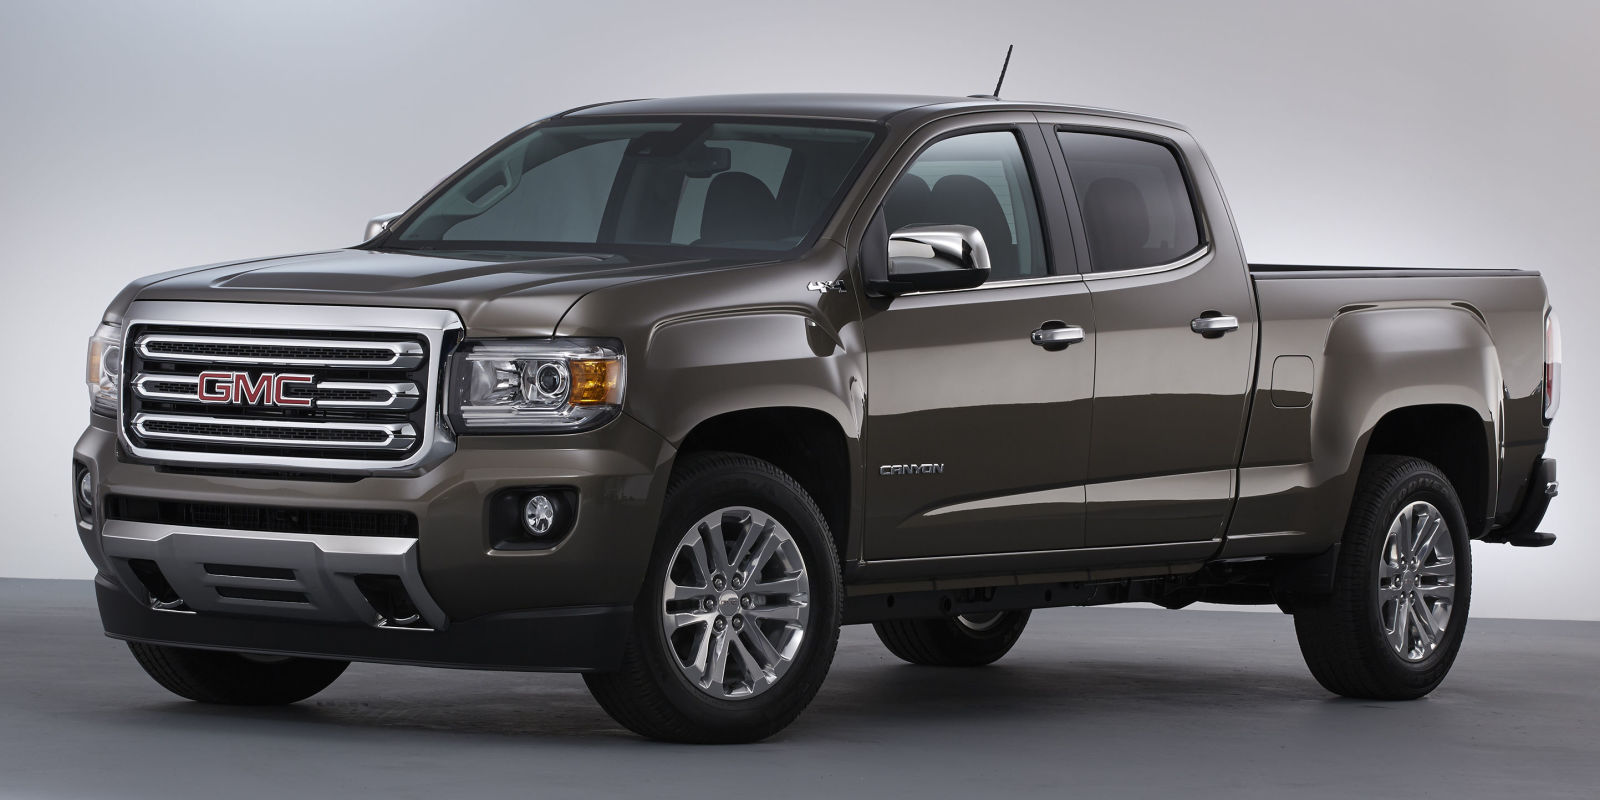 2015 GMC Canyon: The Compact Truck Is Back